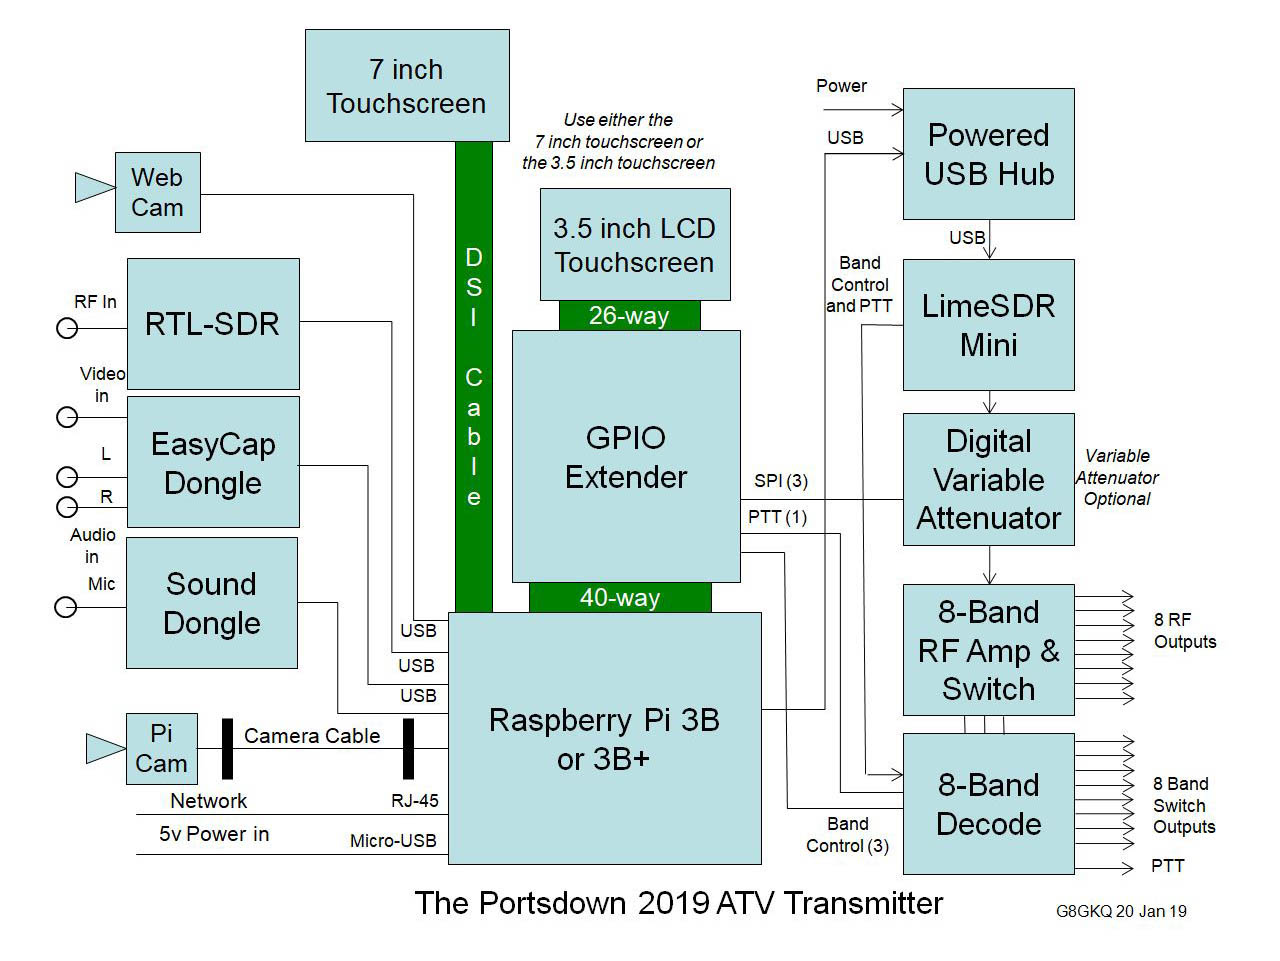 BATC Portsdown Block Diagram